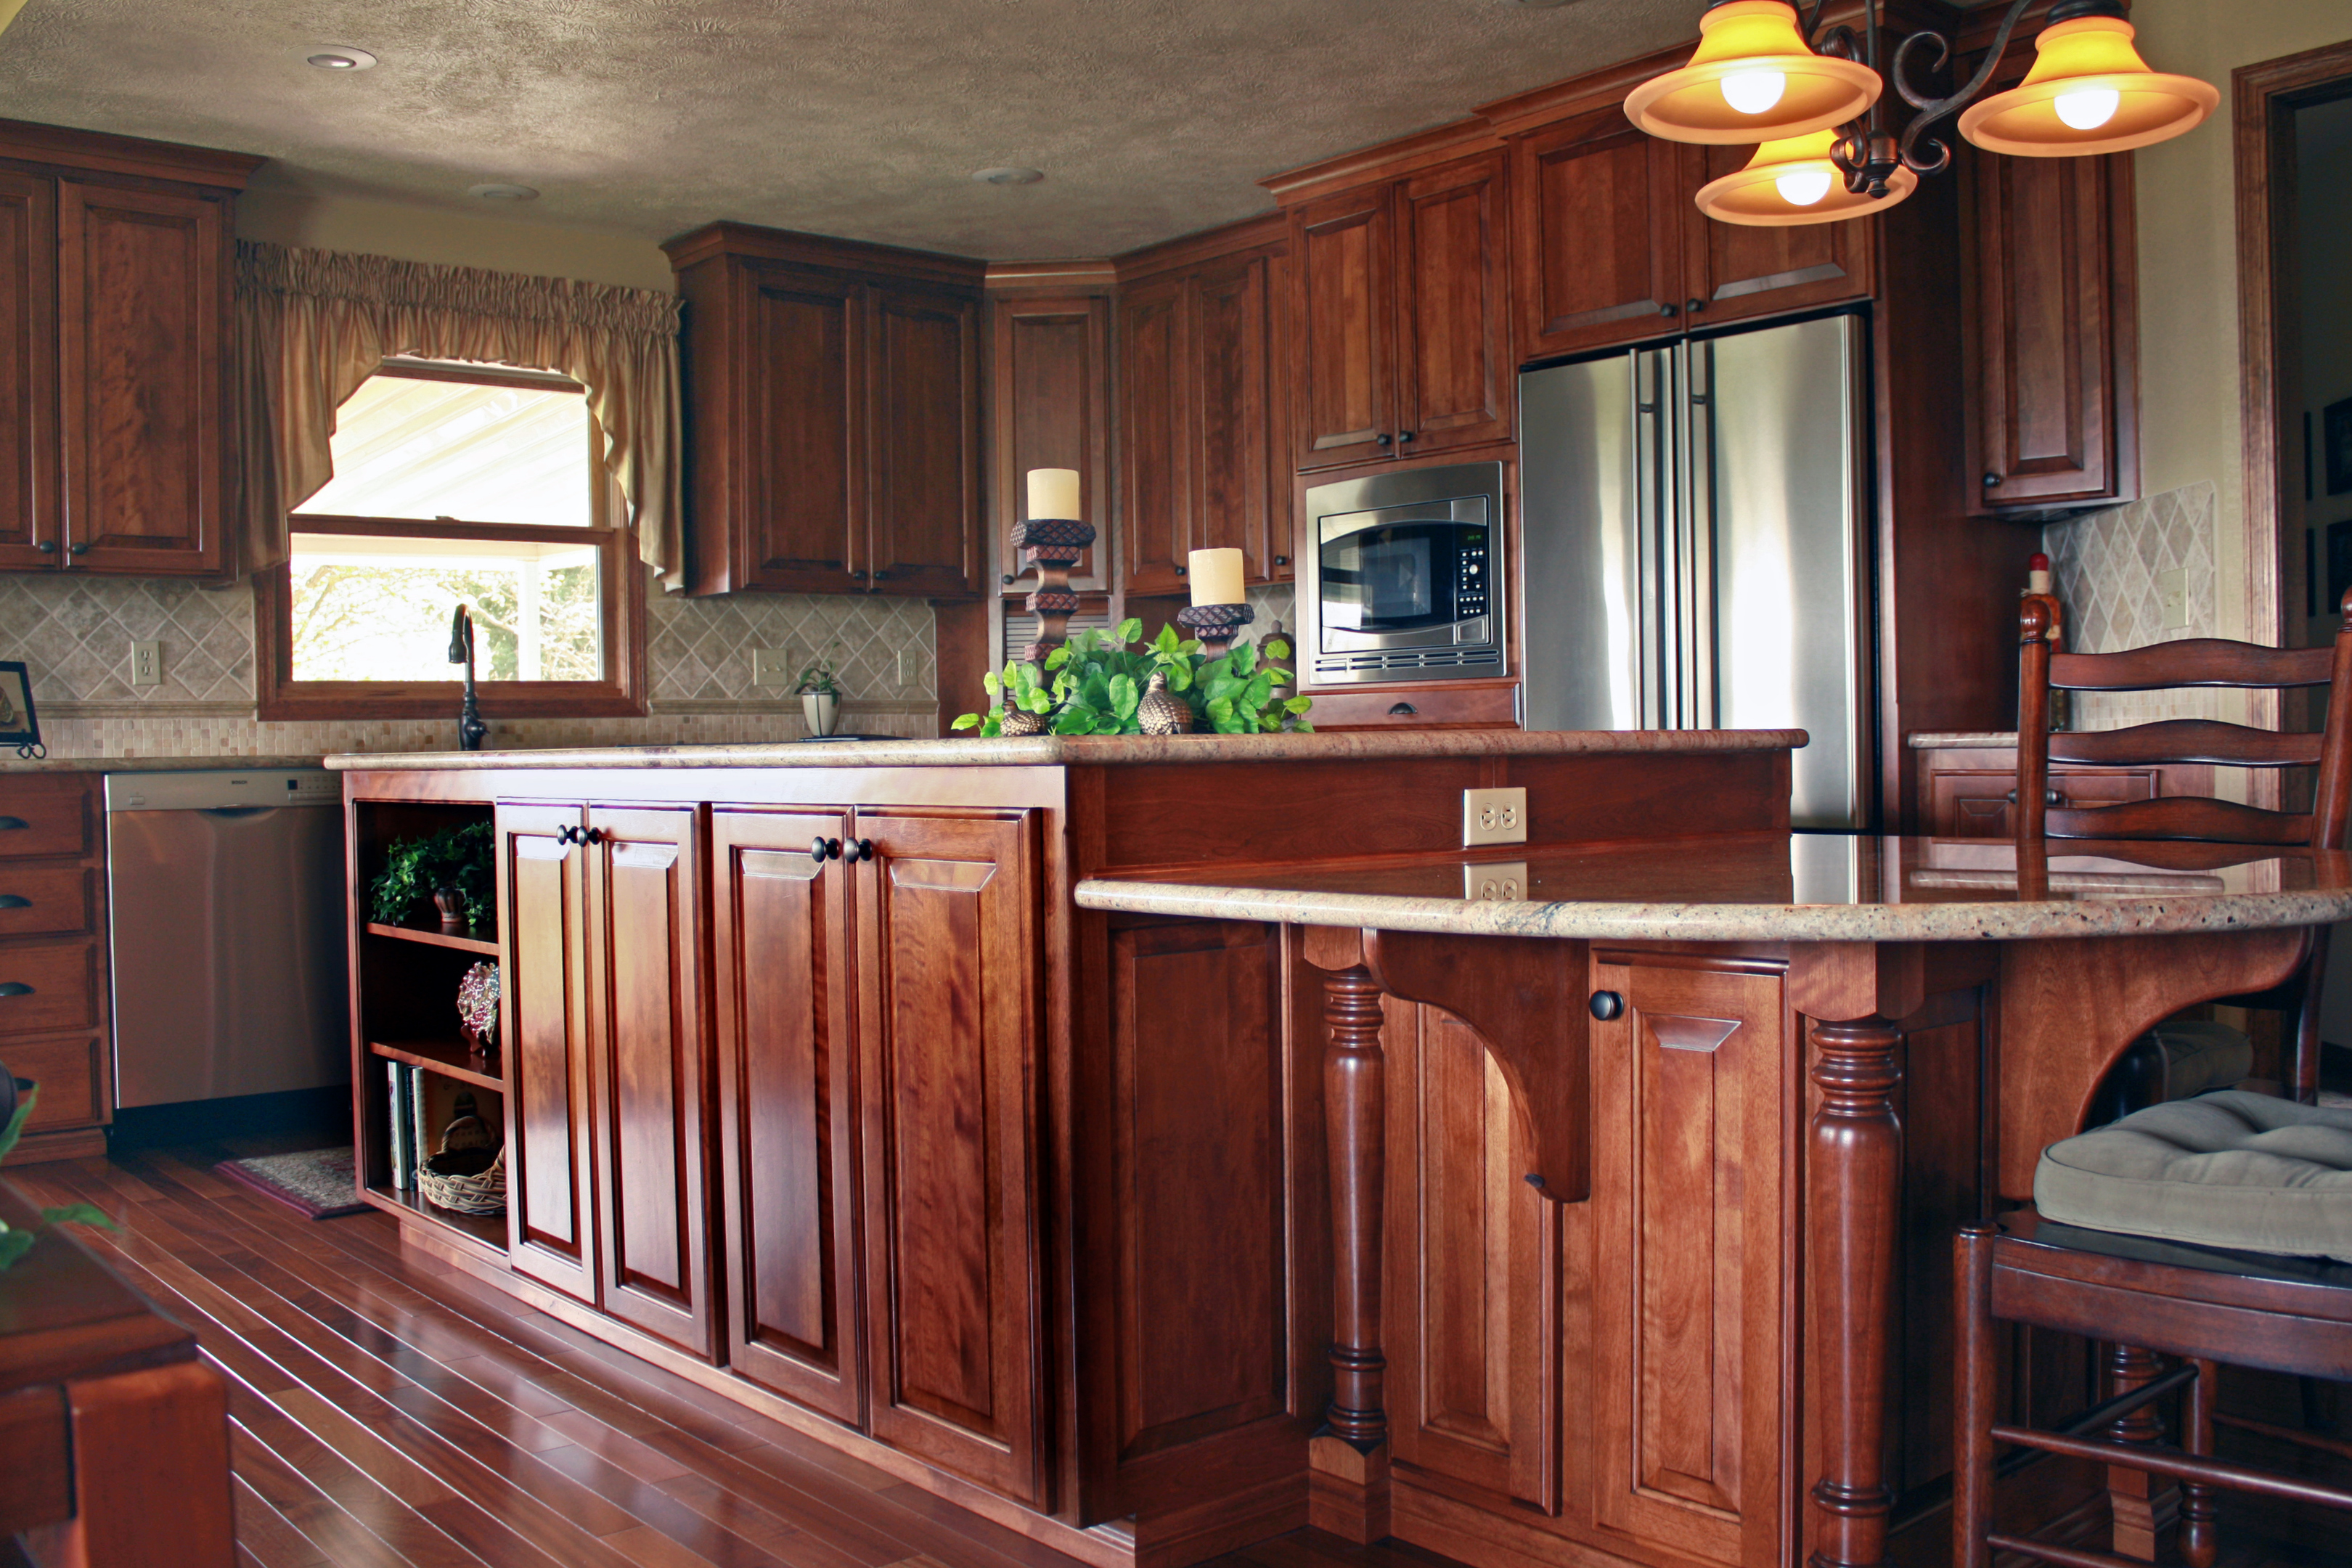 Home Furniture Kitchen Island Panels affordable custom cabinets showroom thumb kitchen traditional style red birch dark raised panel island with posts and bar supports